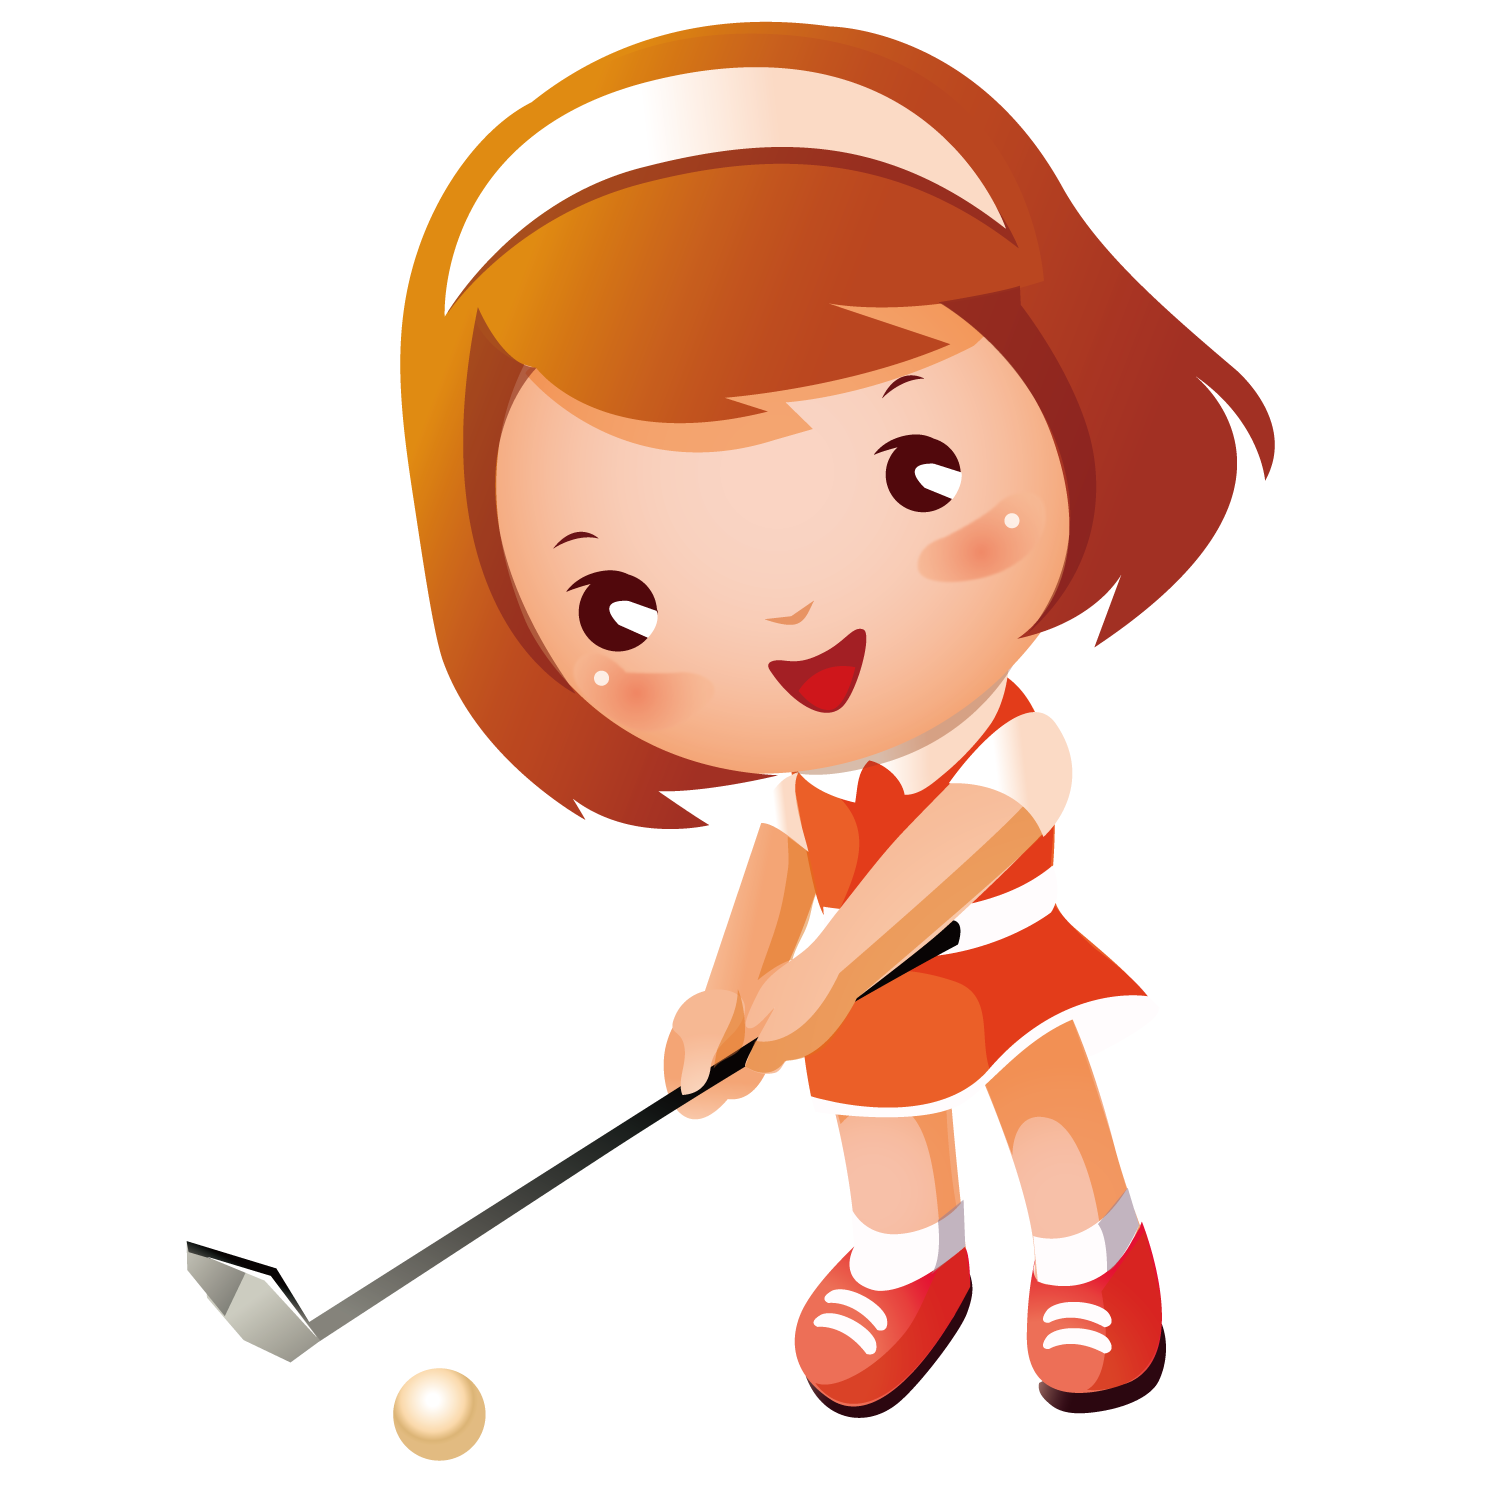 Girl playing baseball clipart clipart images gallery for free.